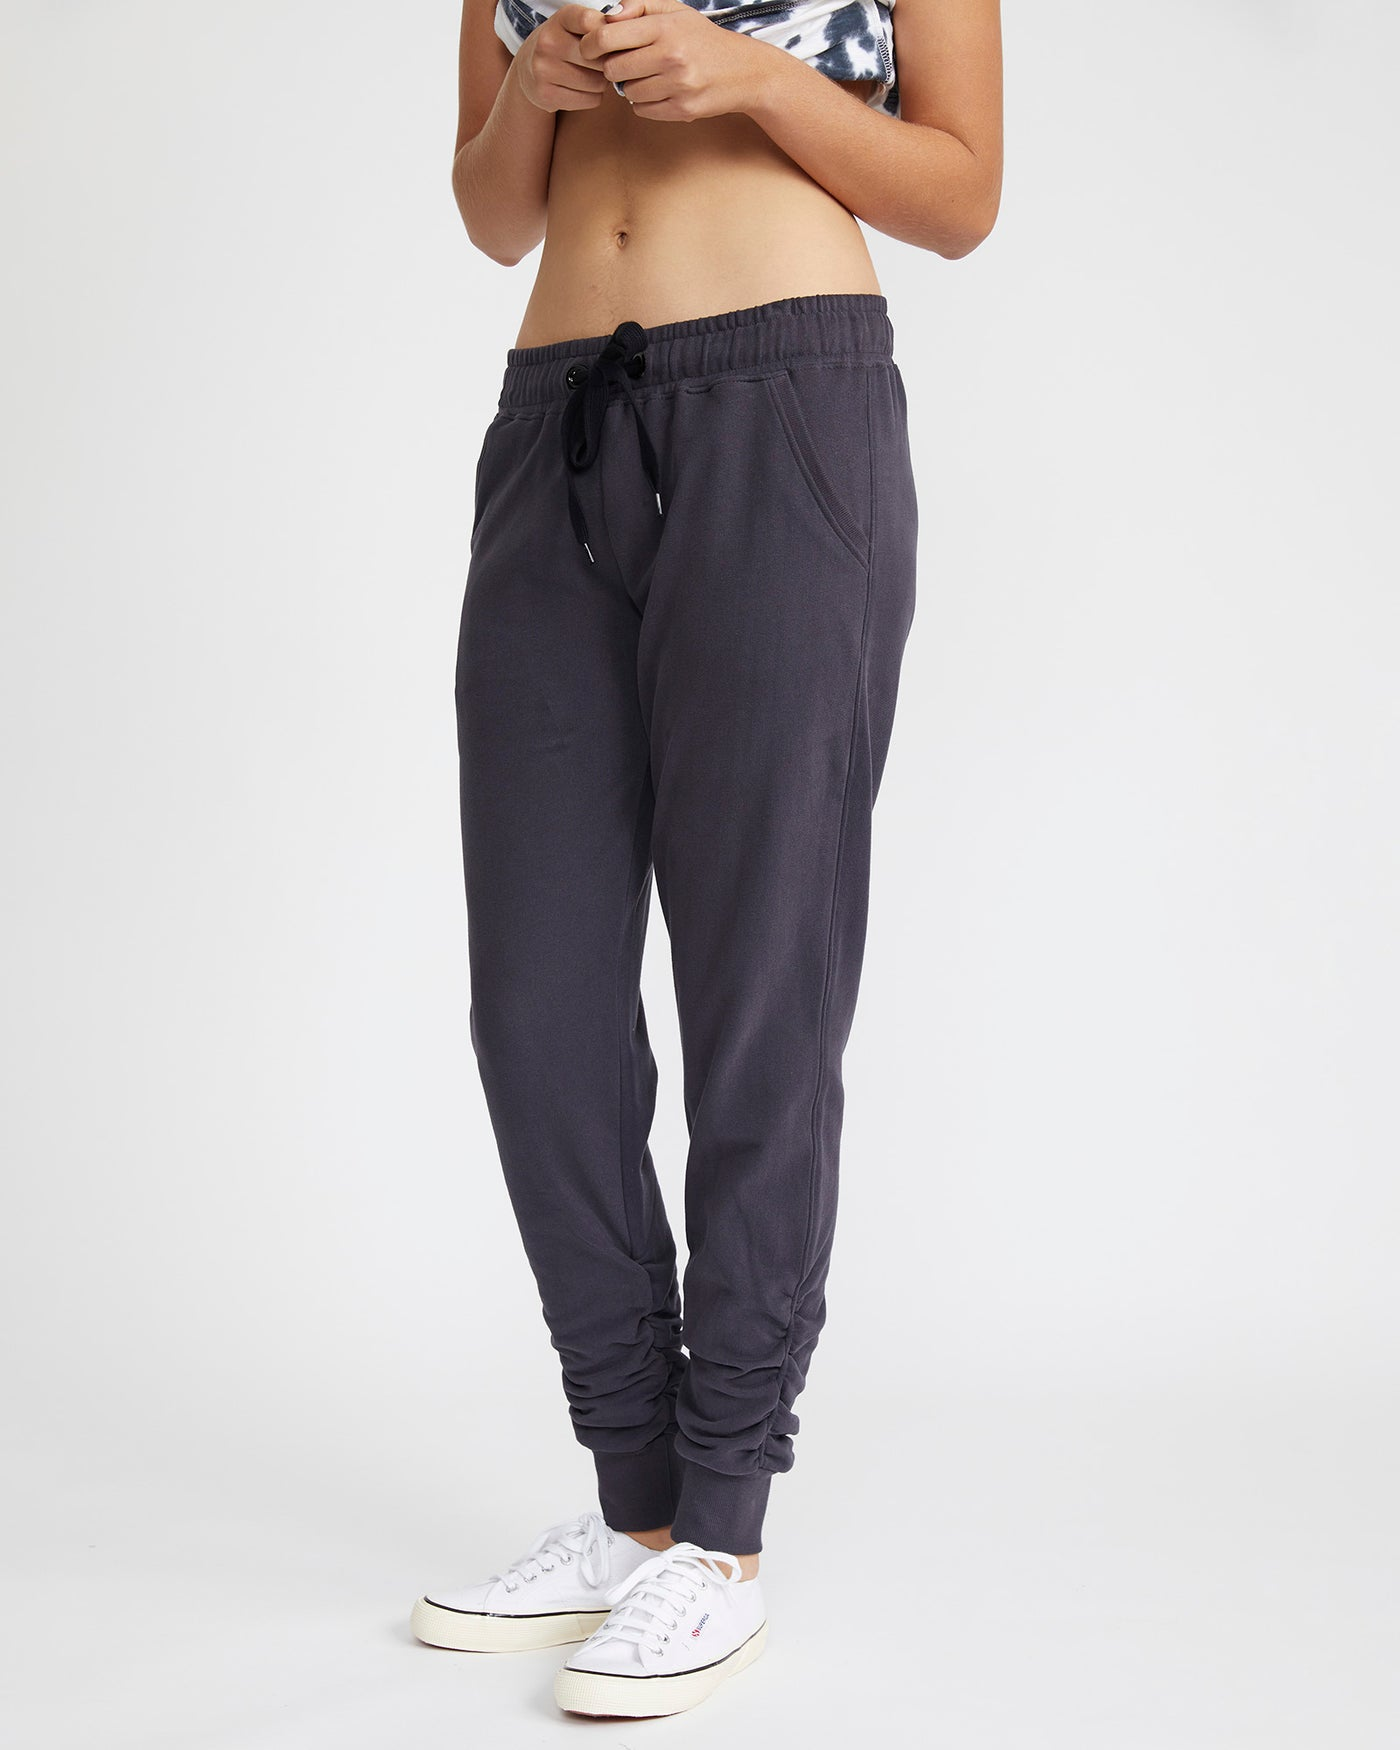 Sienna Sweat Pant- Vintage Black